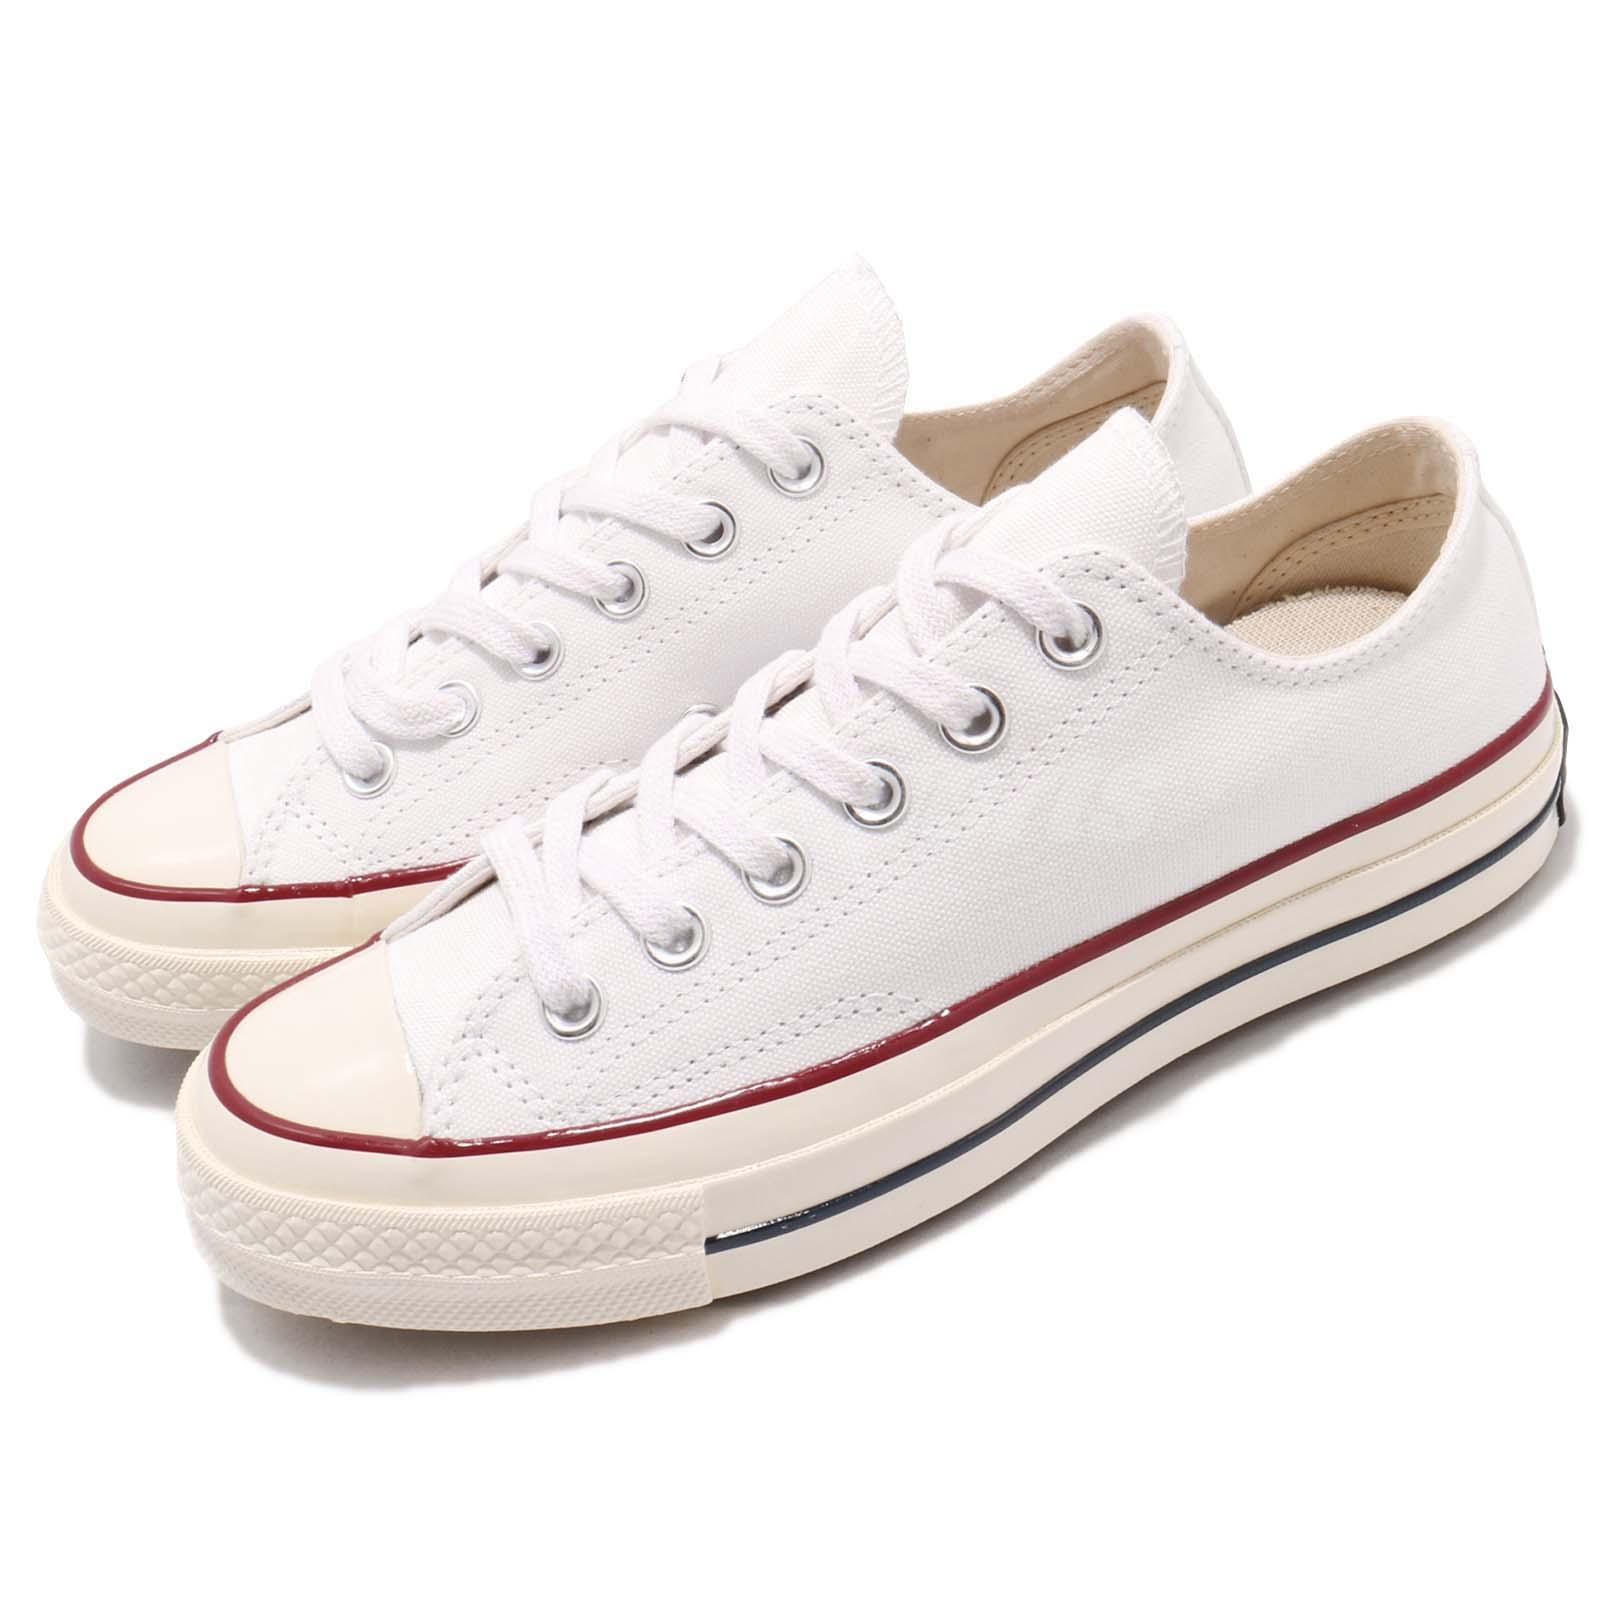 832461d0a18 Details about Converse First String Chuck Taylor All Star 70 1970s OX White  Men Women 162065C